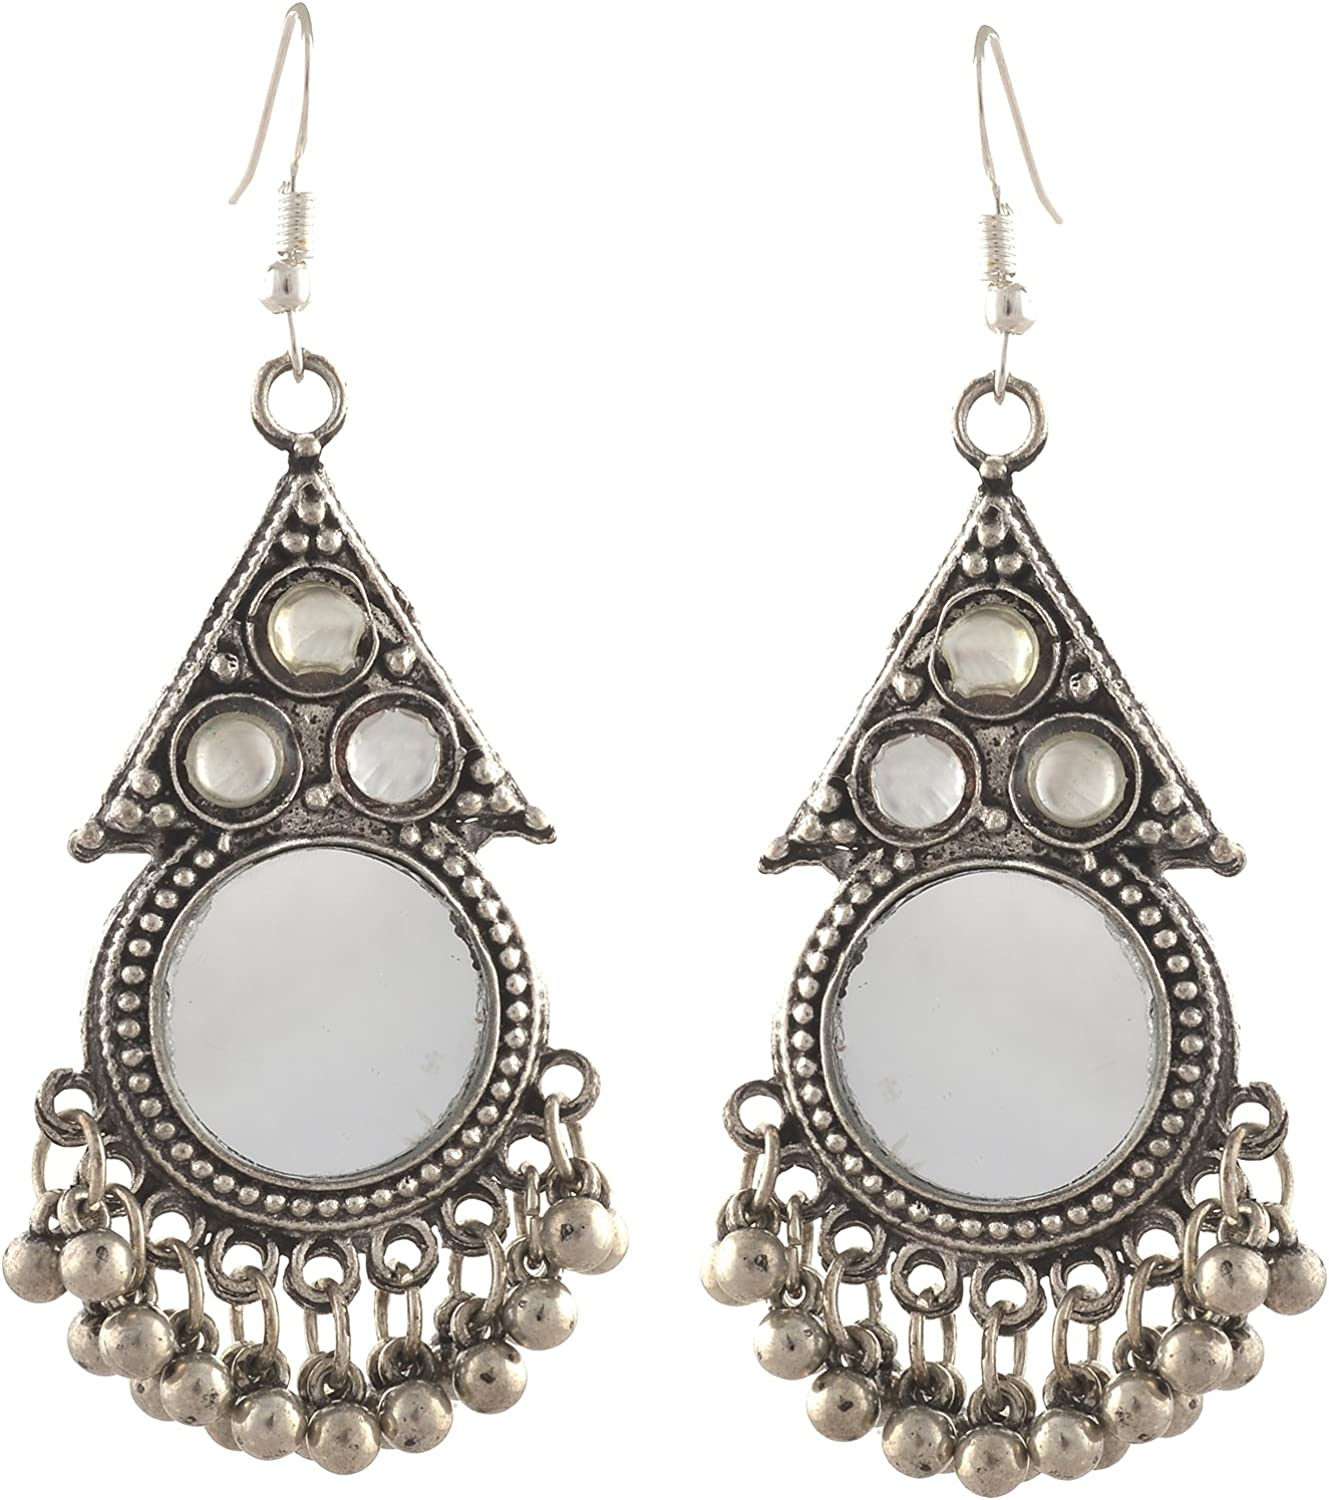 Zephyrr Fashion German Silver Beaded Turkish Style Chandbali Earrings Combo of 2